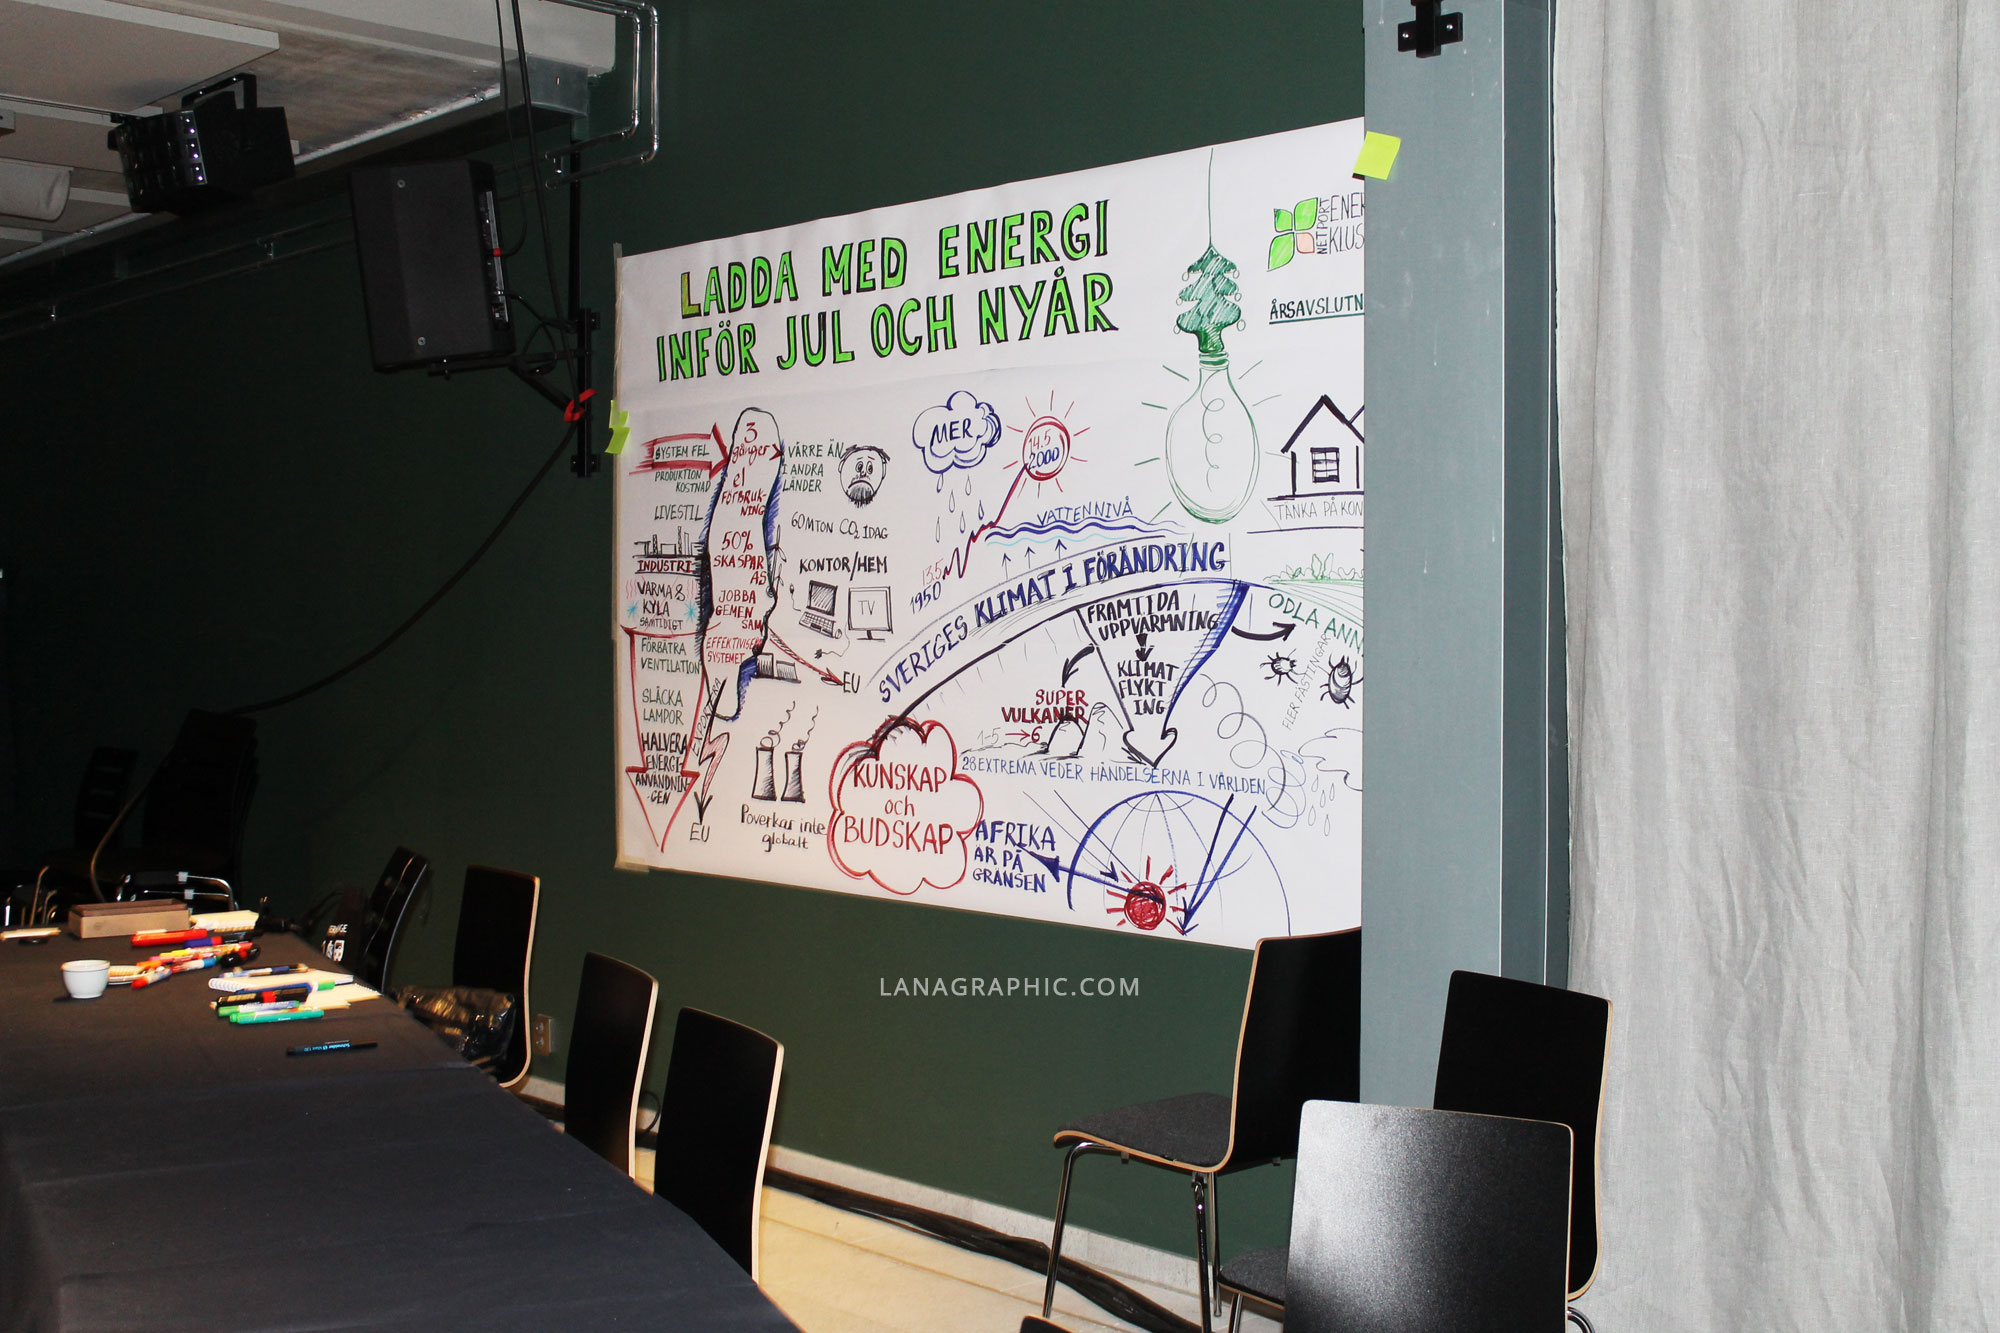 Ladda-med-Energi-Graphic-recording-by-Lanagraphic